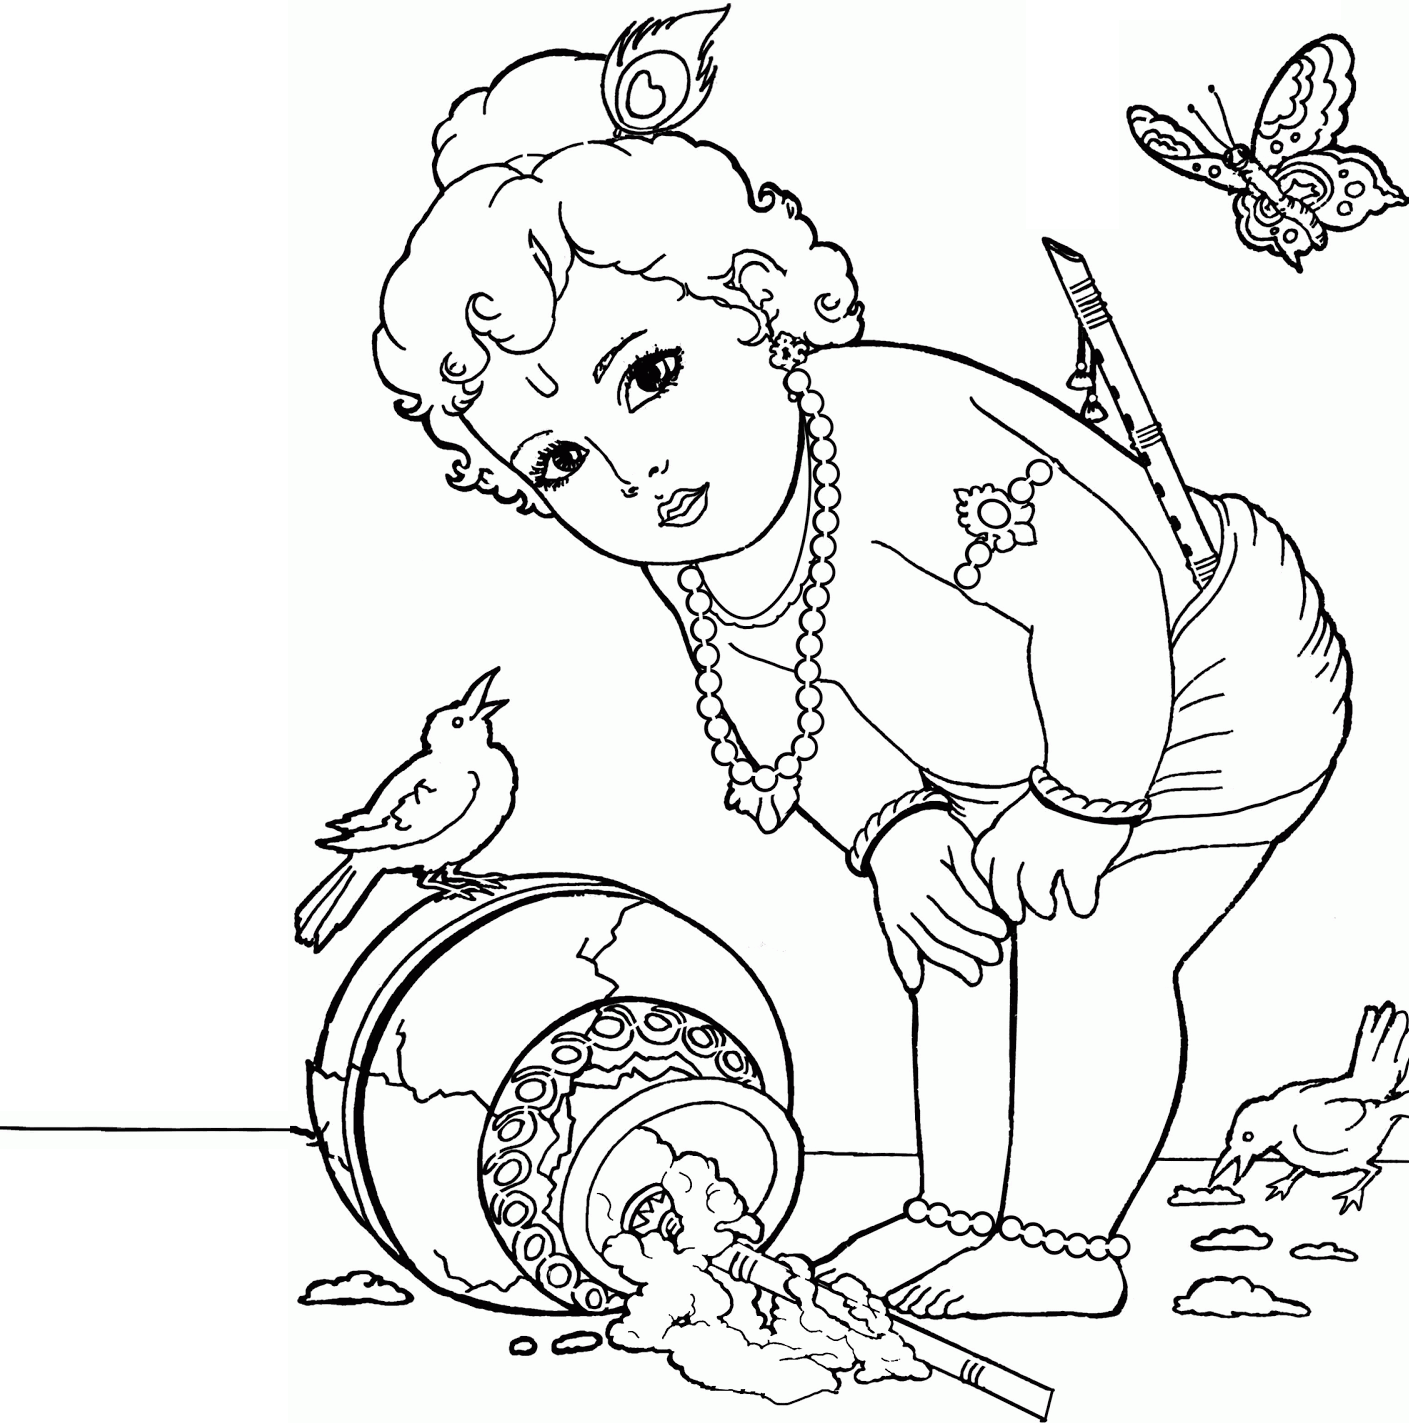 krishna images krishna lord and baby krishna on coloring krishna art - Baby Krishna Images Coloring Pages